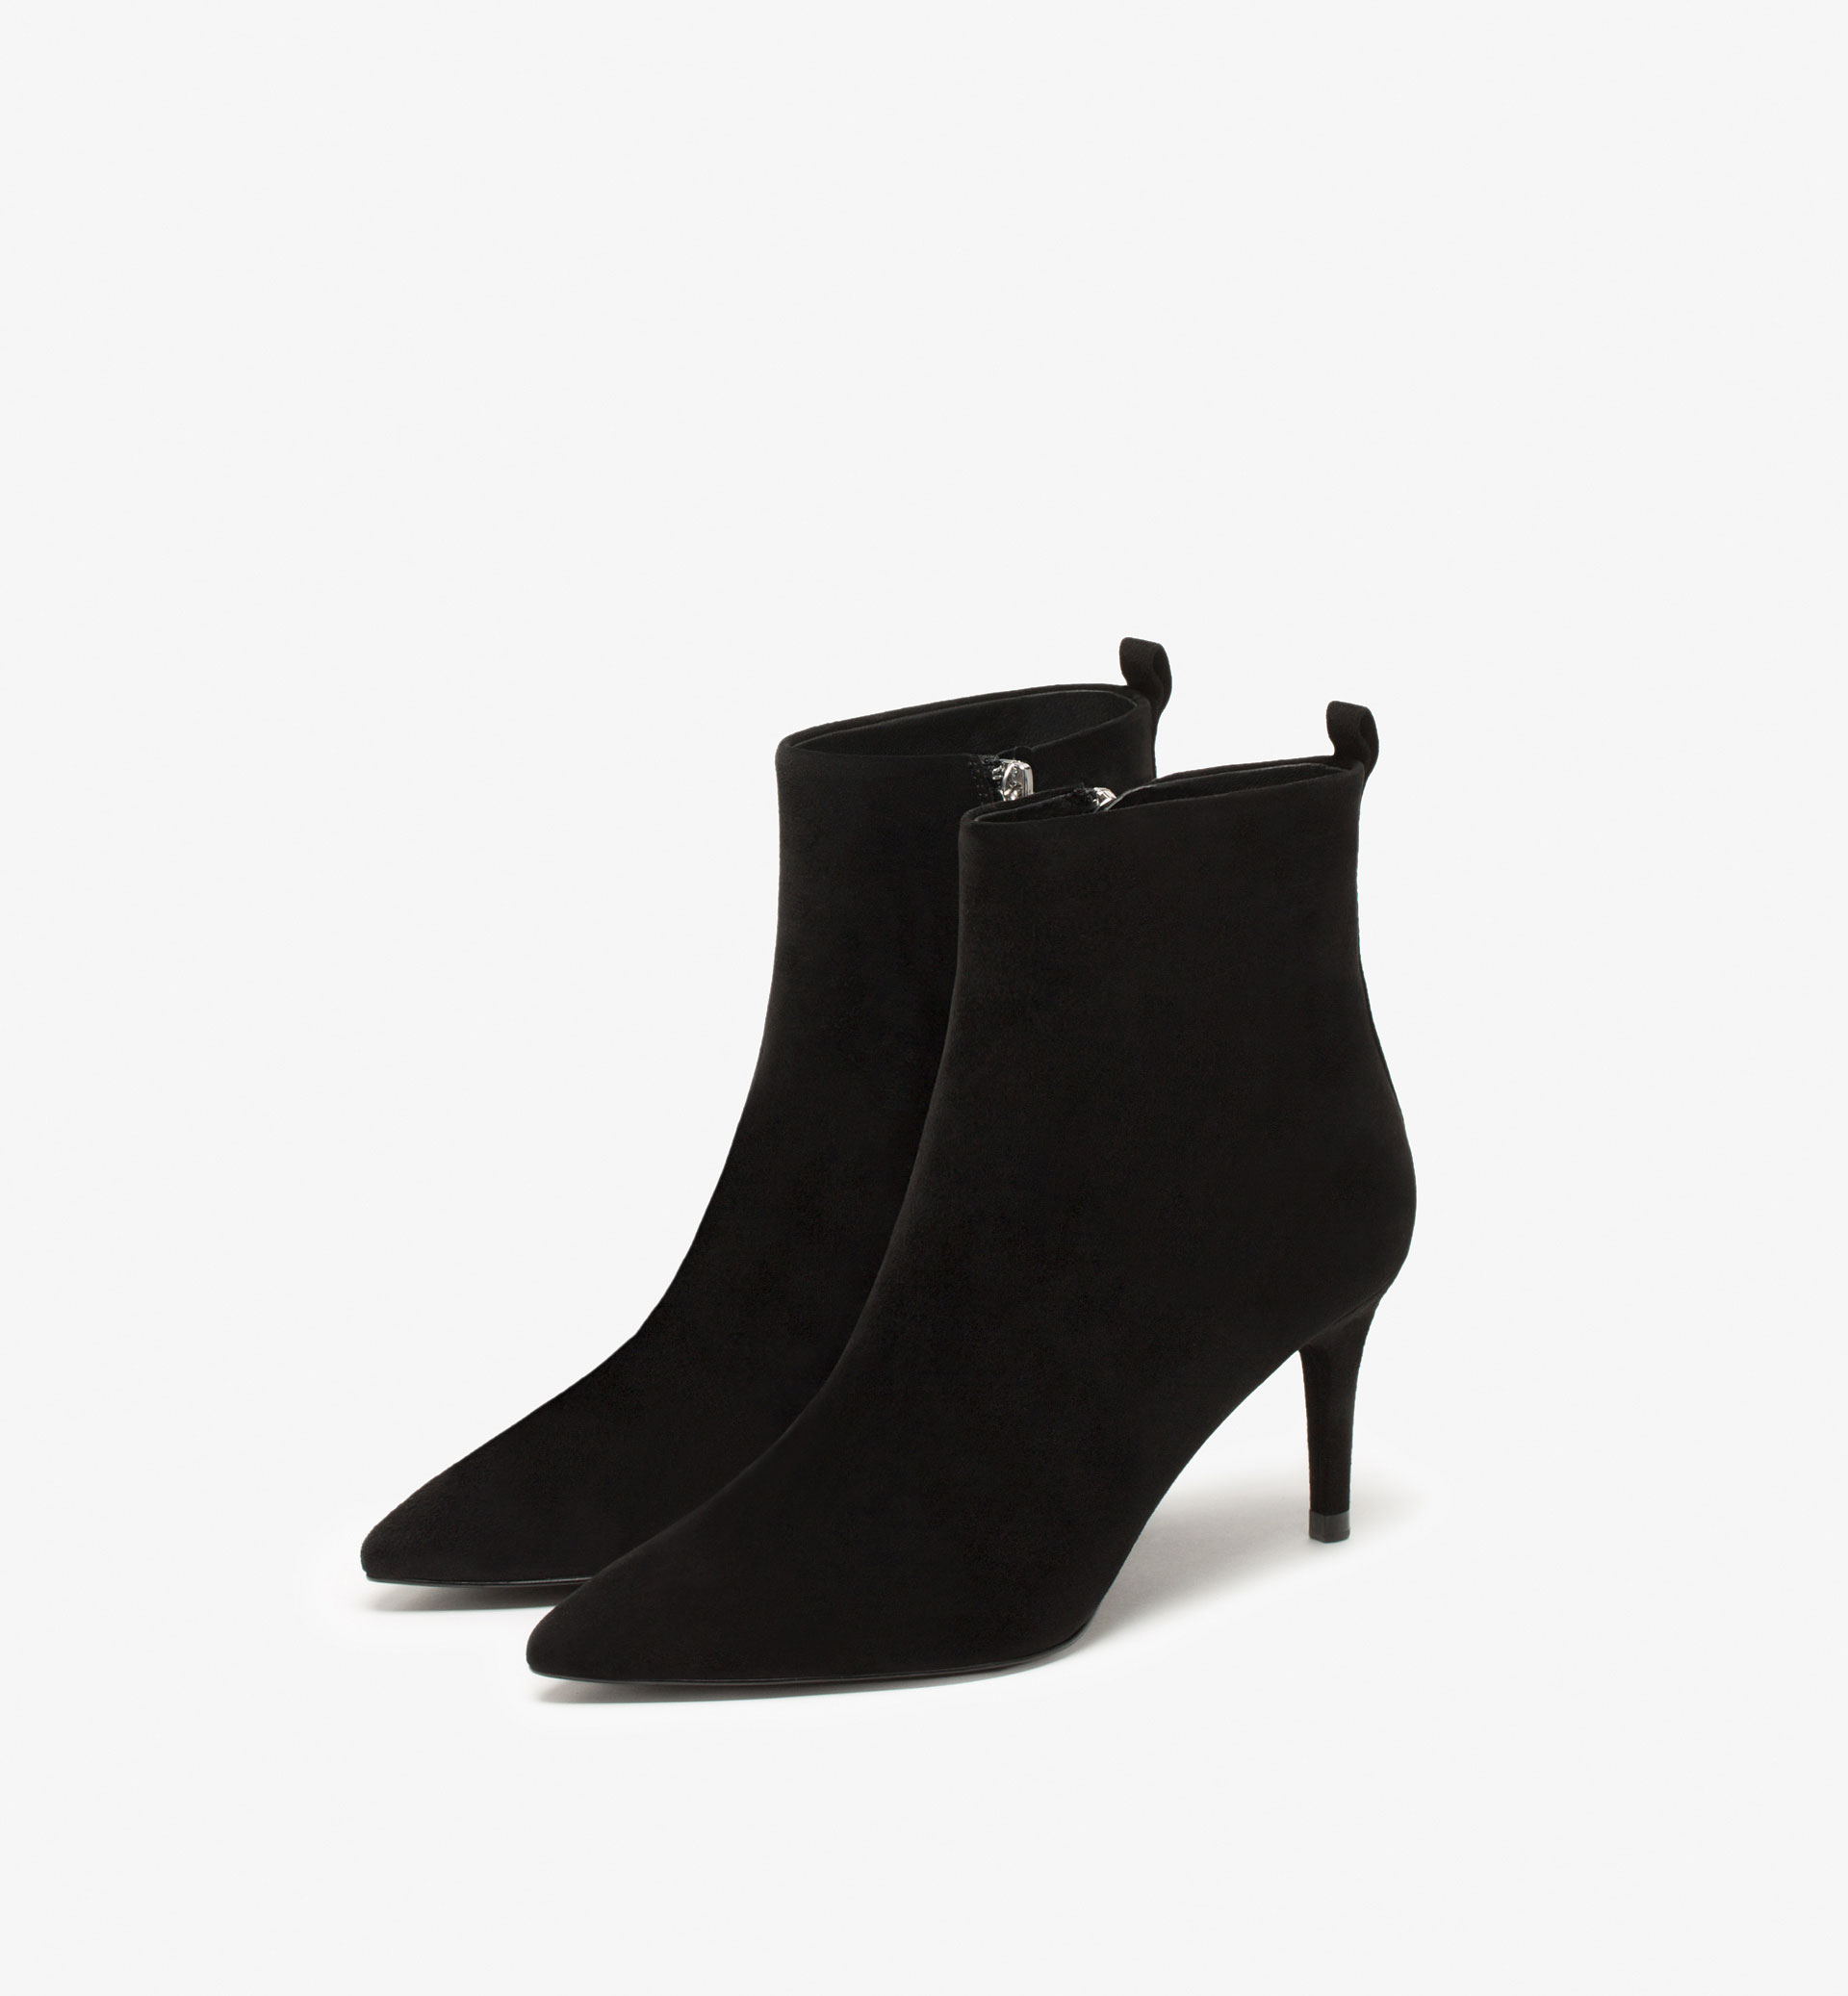 BLACK SUEDE LEATHER HIGH-HEEL ANKLE BOOTS